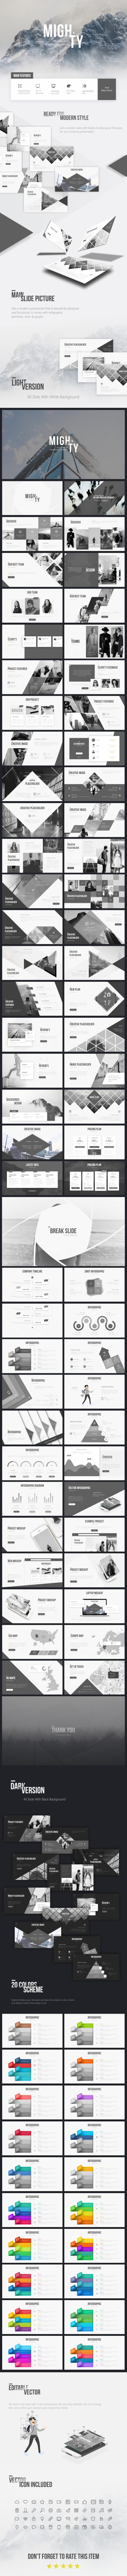 Mighty Multipurpose Presentation Template - Business PowerPoint Templates